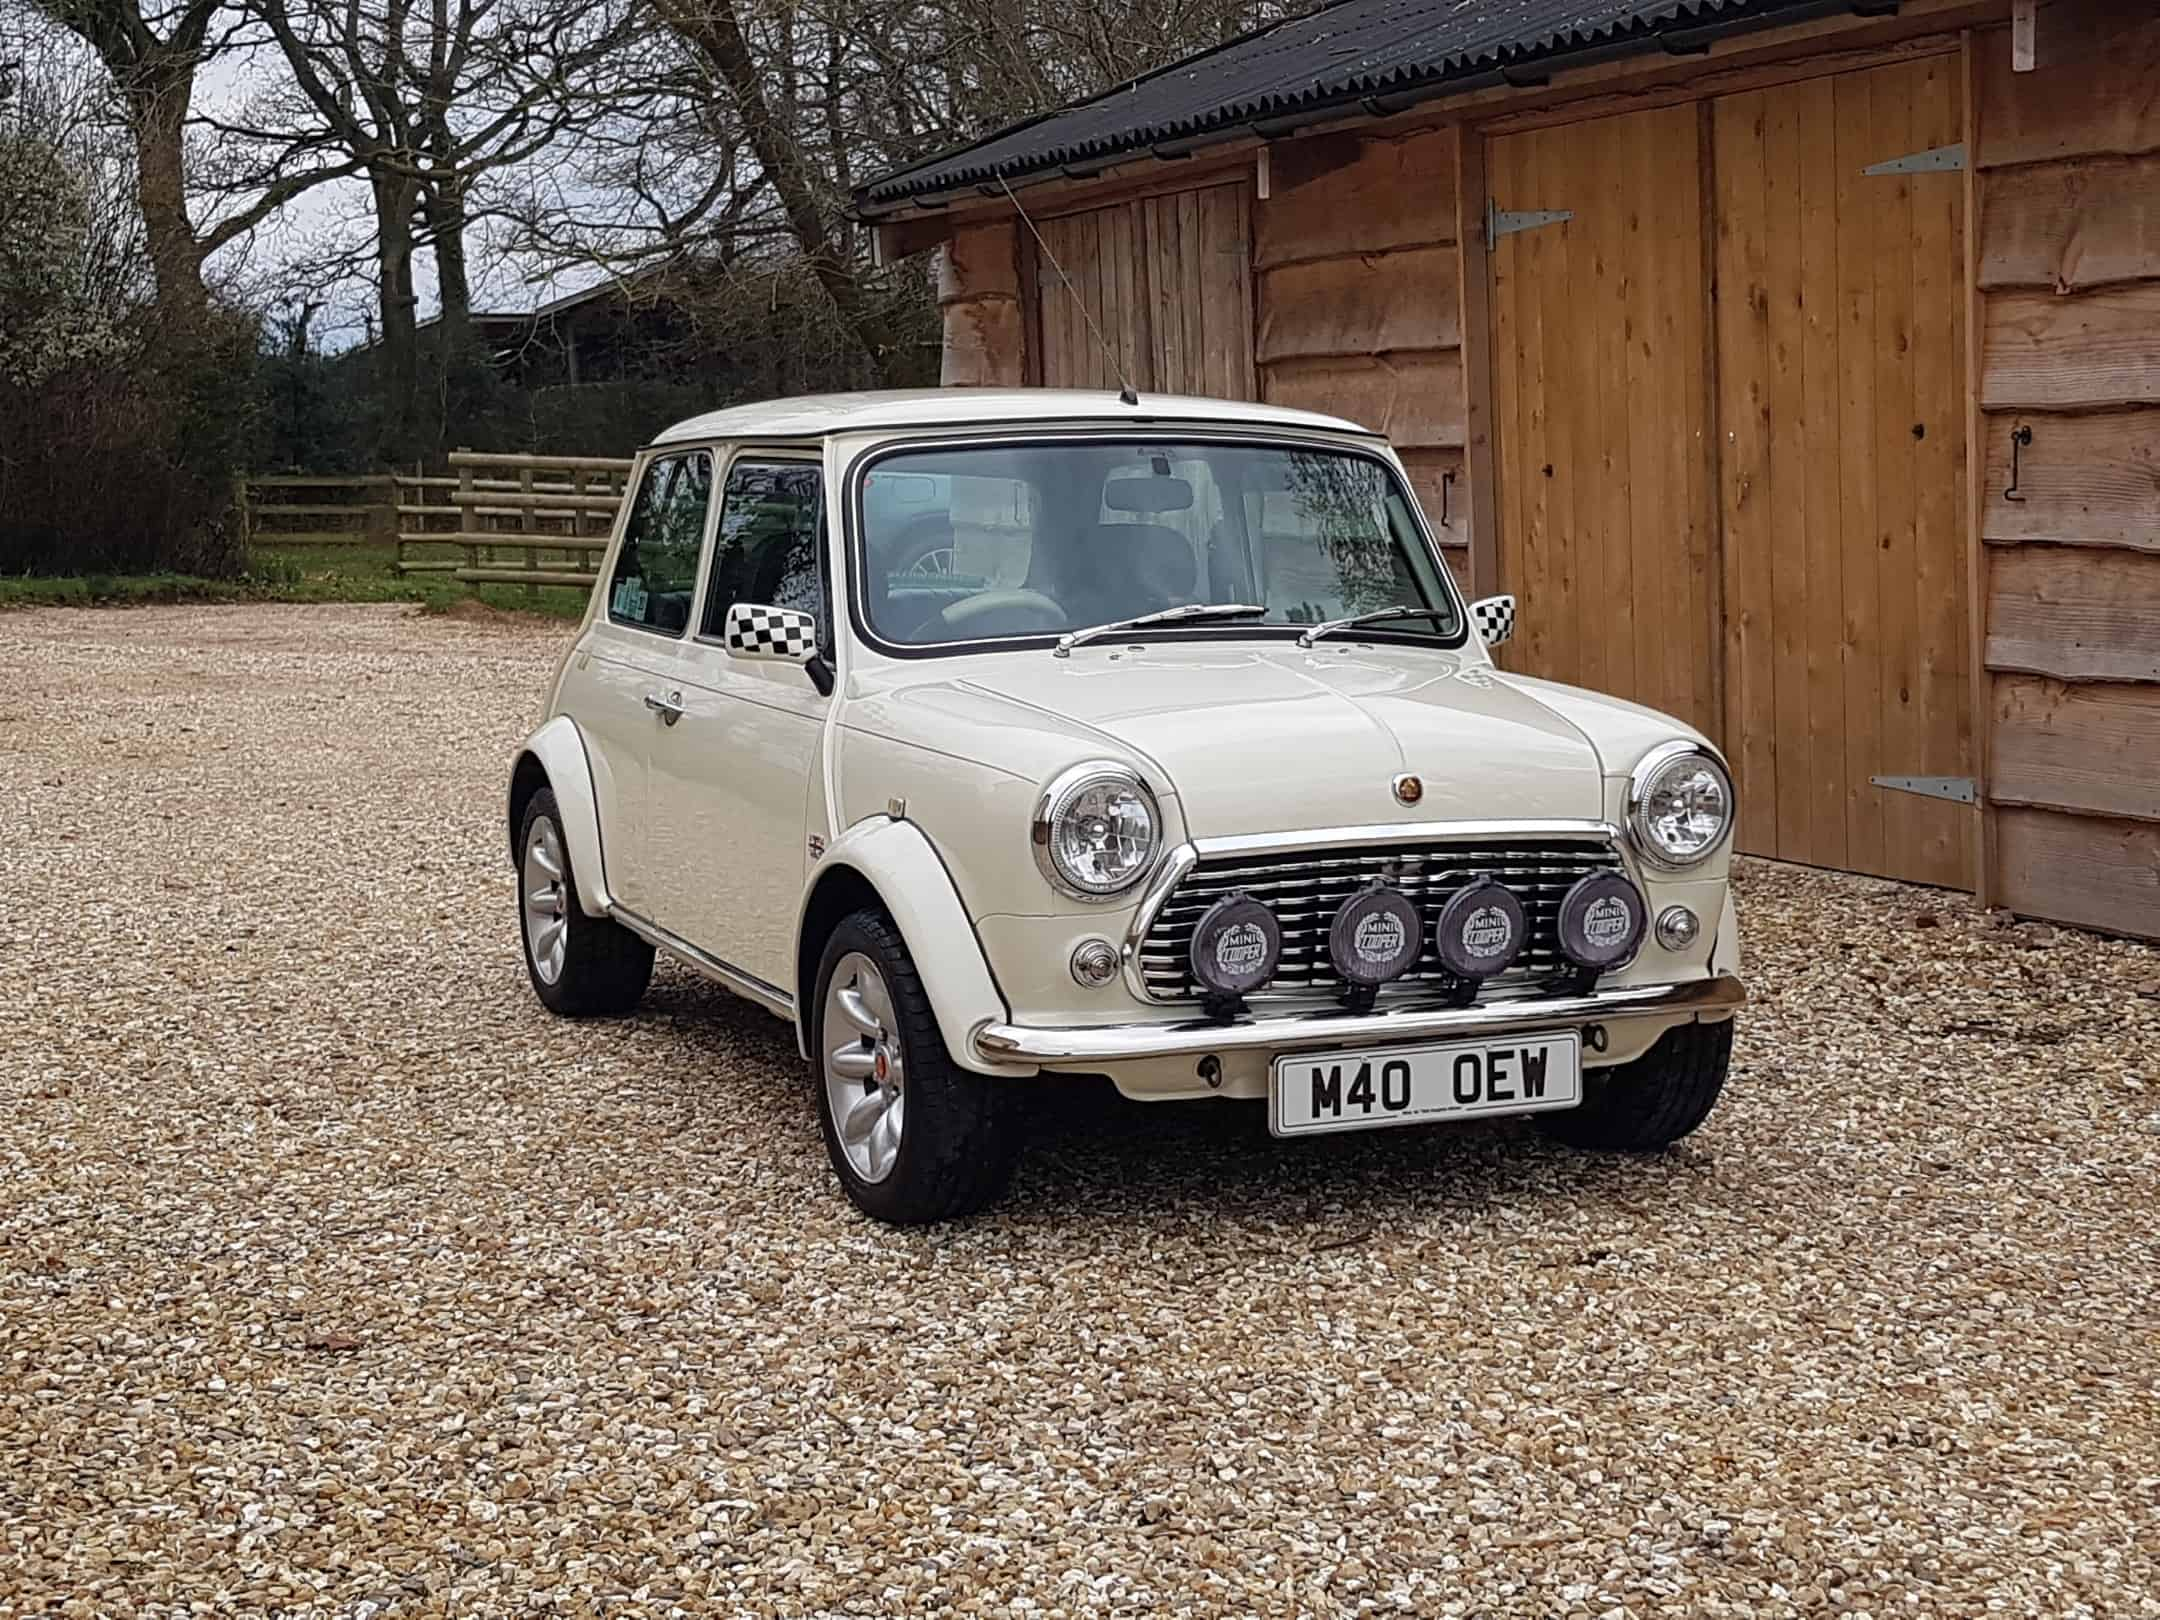 ** NOW SOLD ** Very Rare Mini Cooper 40 LE In Old English White On Just 25900 Miles From New